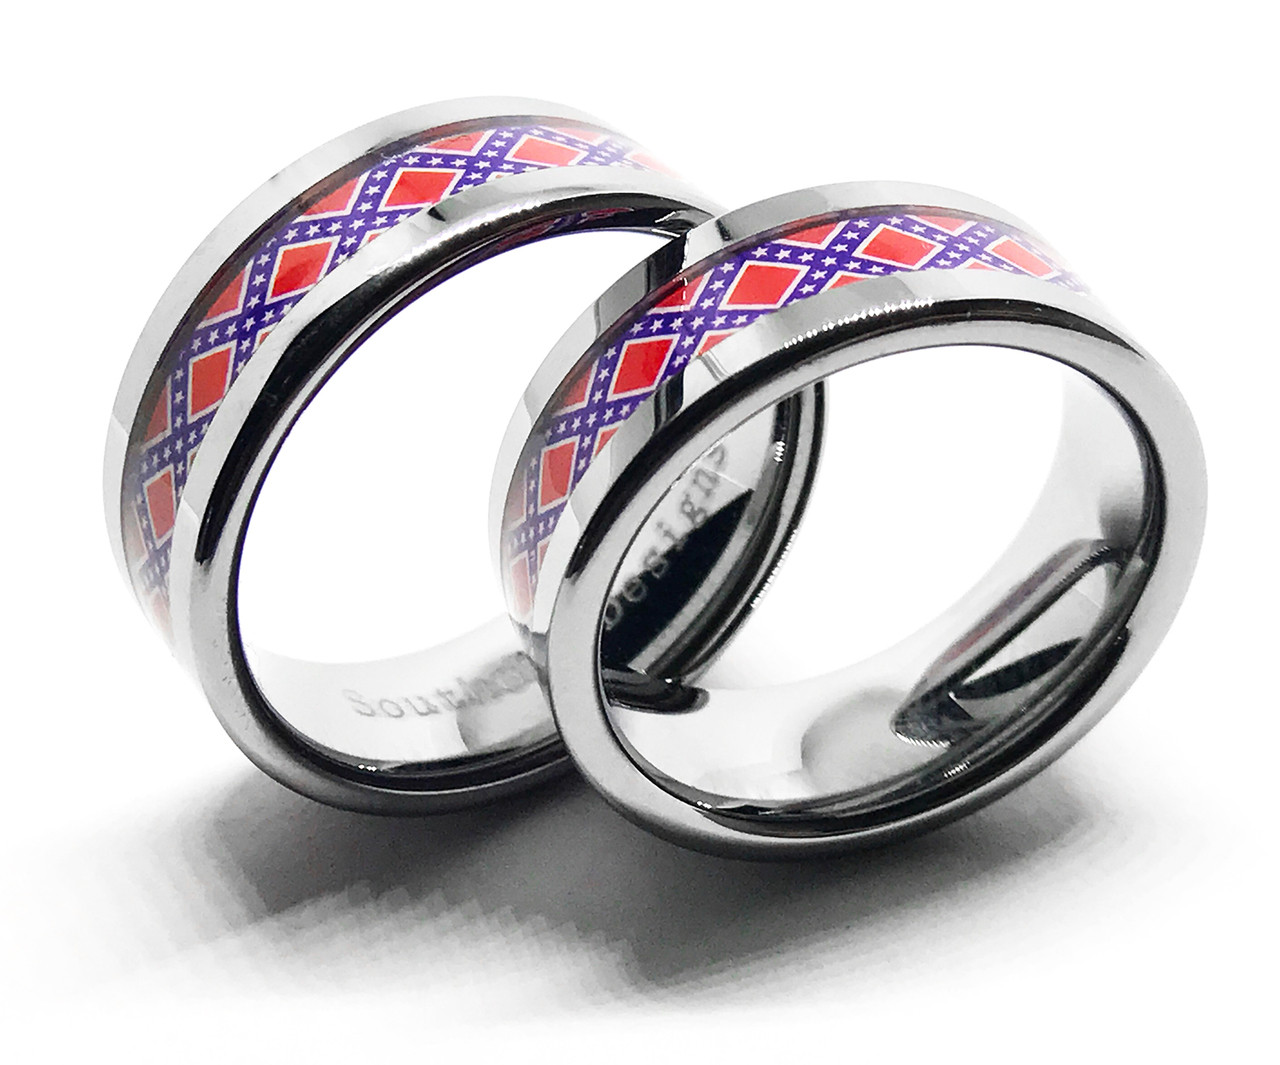 Silver Couples Confederate Flag Ring Set - His and Hers